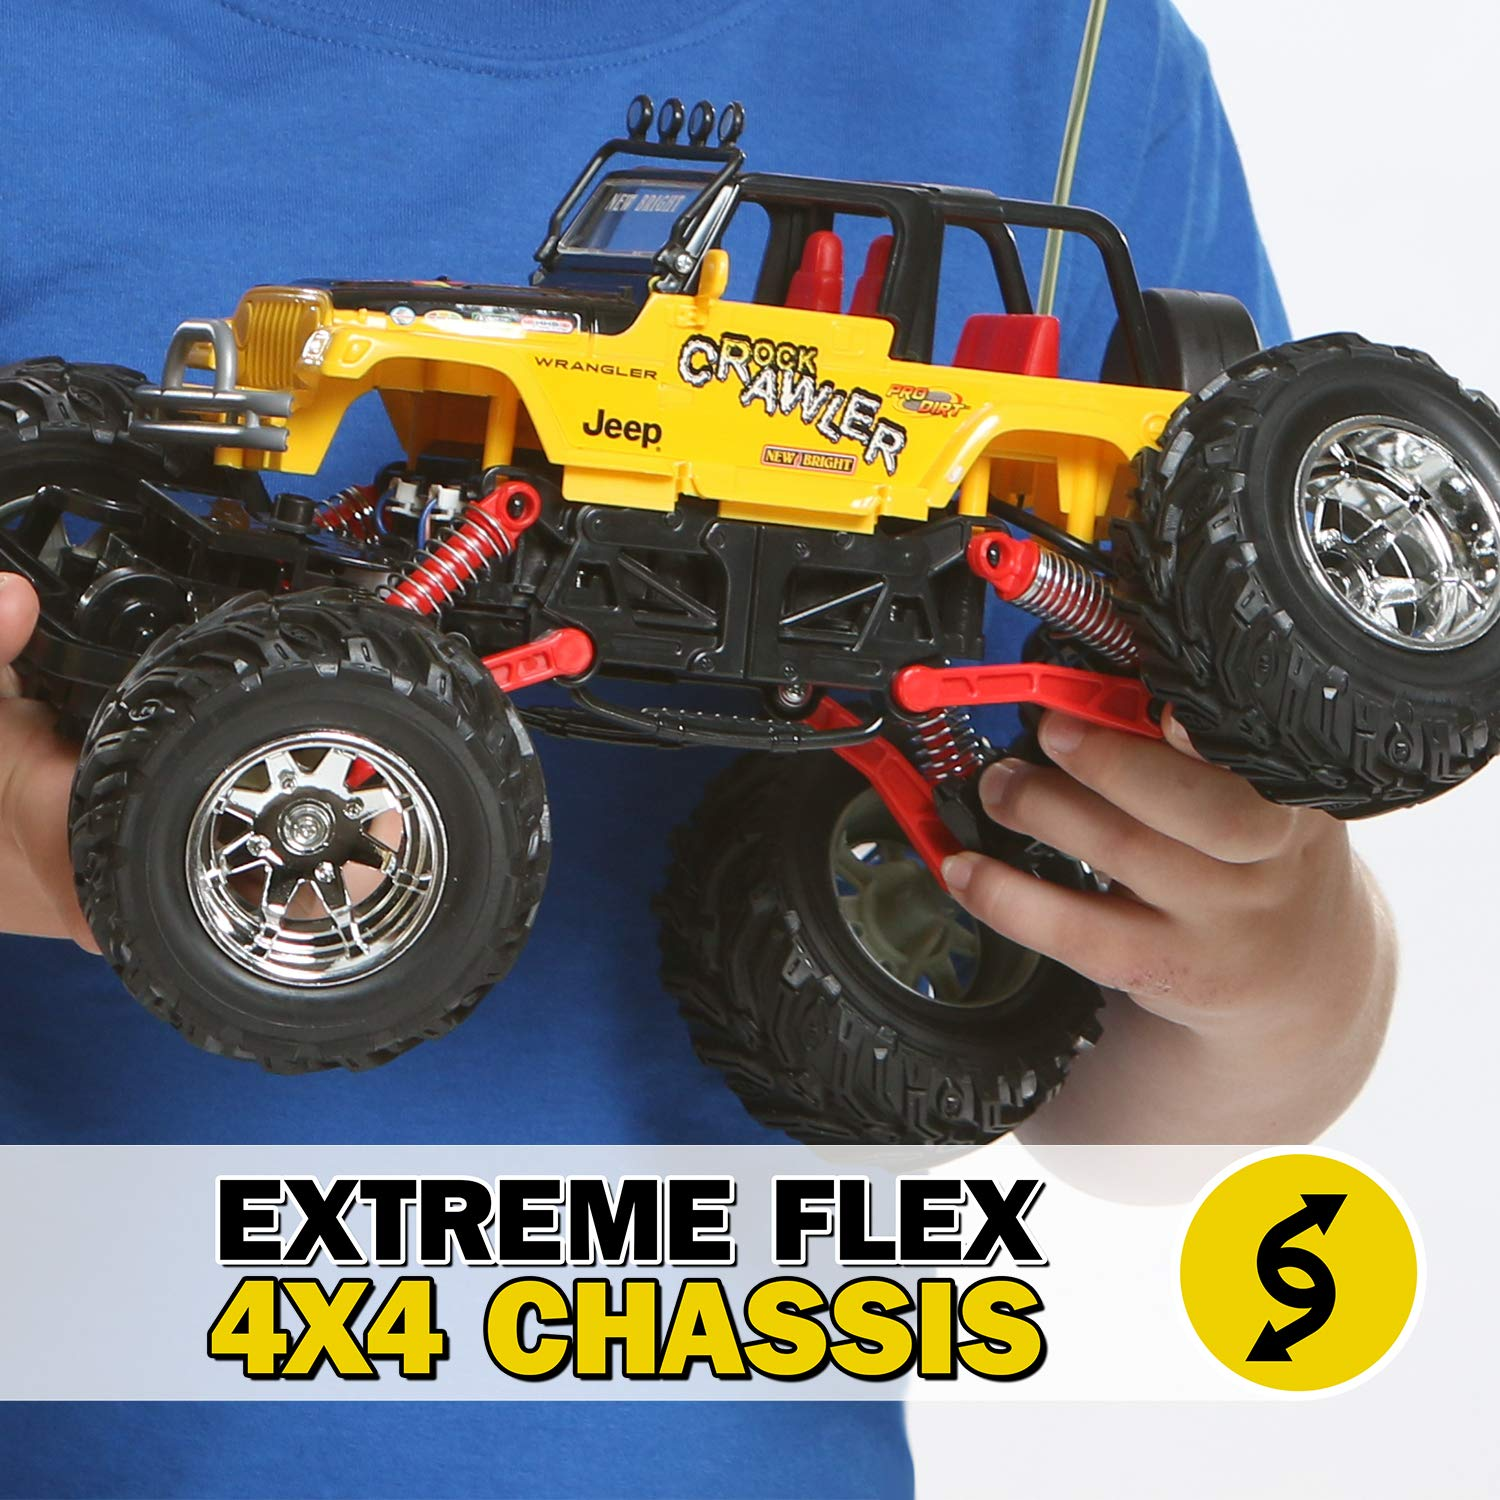 RC CHARGERS Jeep Rock Crawler Off-Road RC Truck   Extreme Flex 4X4 Chassis, Superior Suspension, Off-Road Capable, 27MHz, Pistol Grip Control   AA Batteries Included